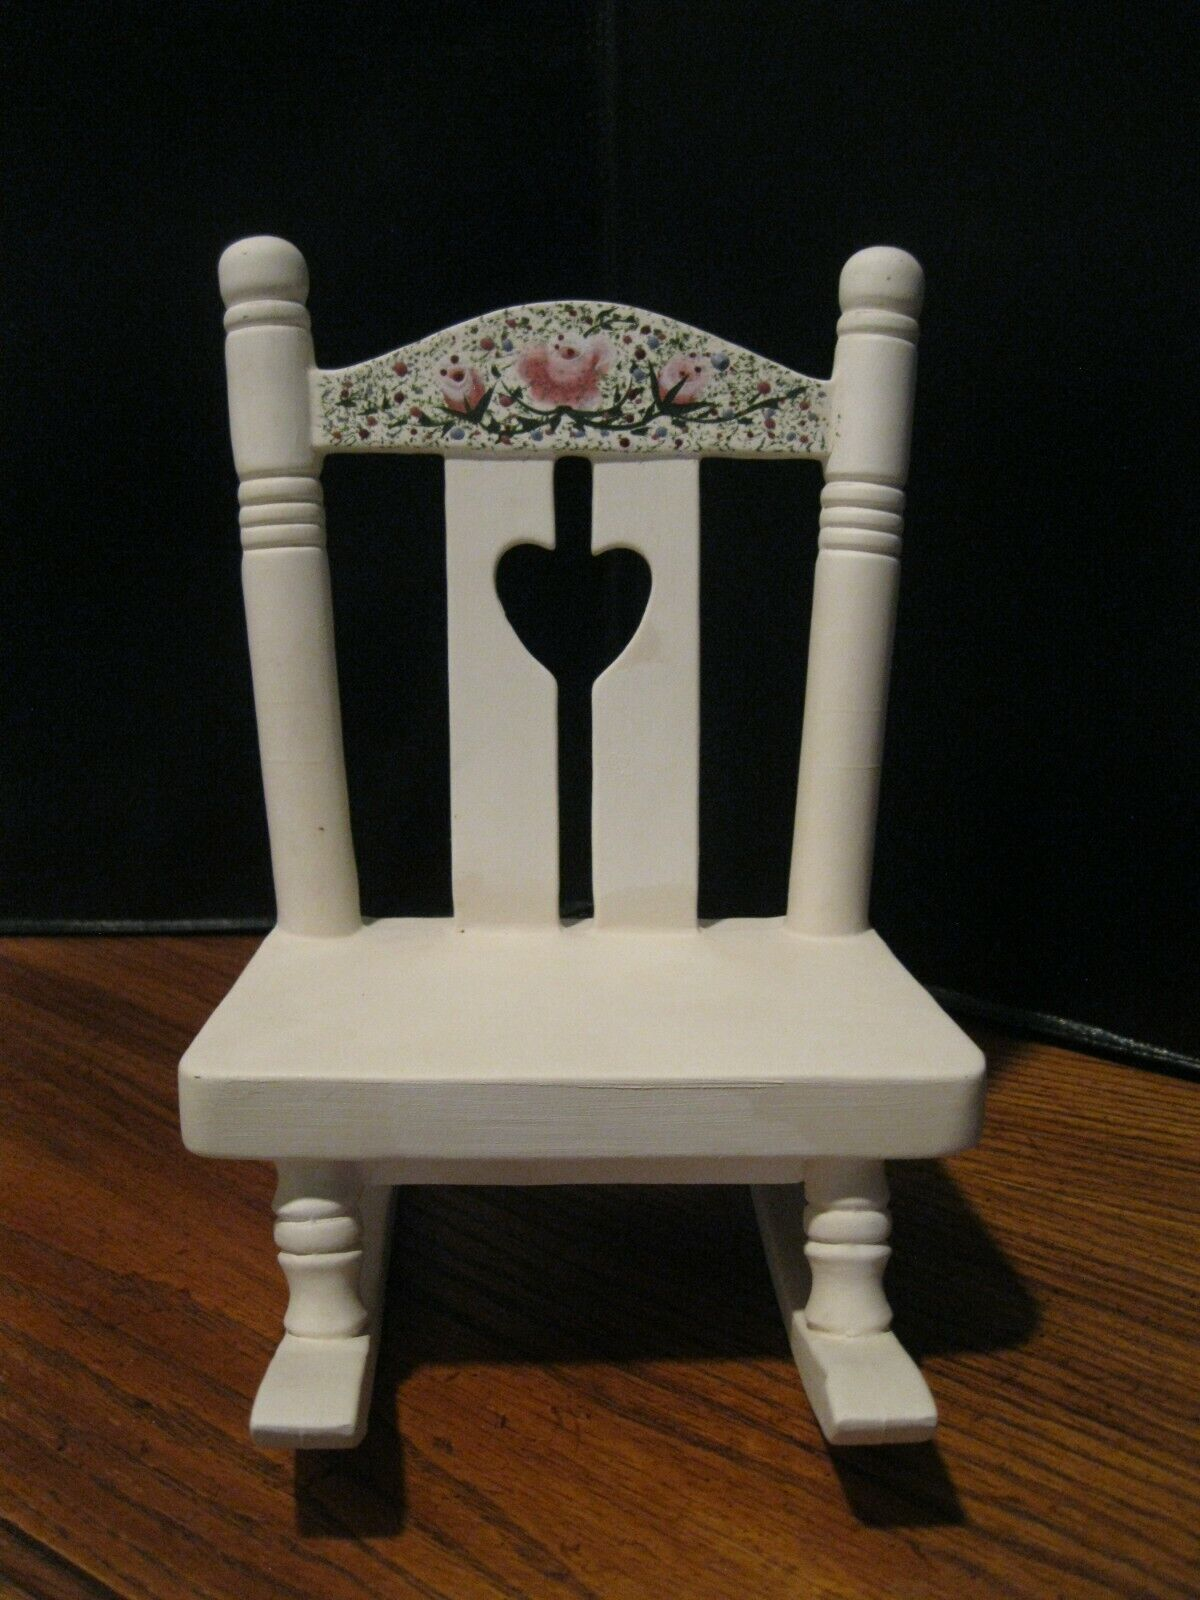 Vintage PORCELAIN BISQUE ROCKING CHAIR Doll Furniture Artisan Made Hand Painted - $29.99